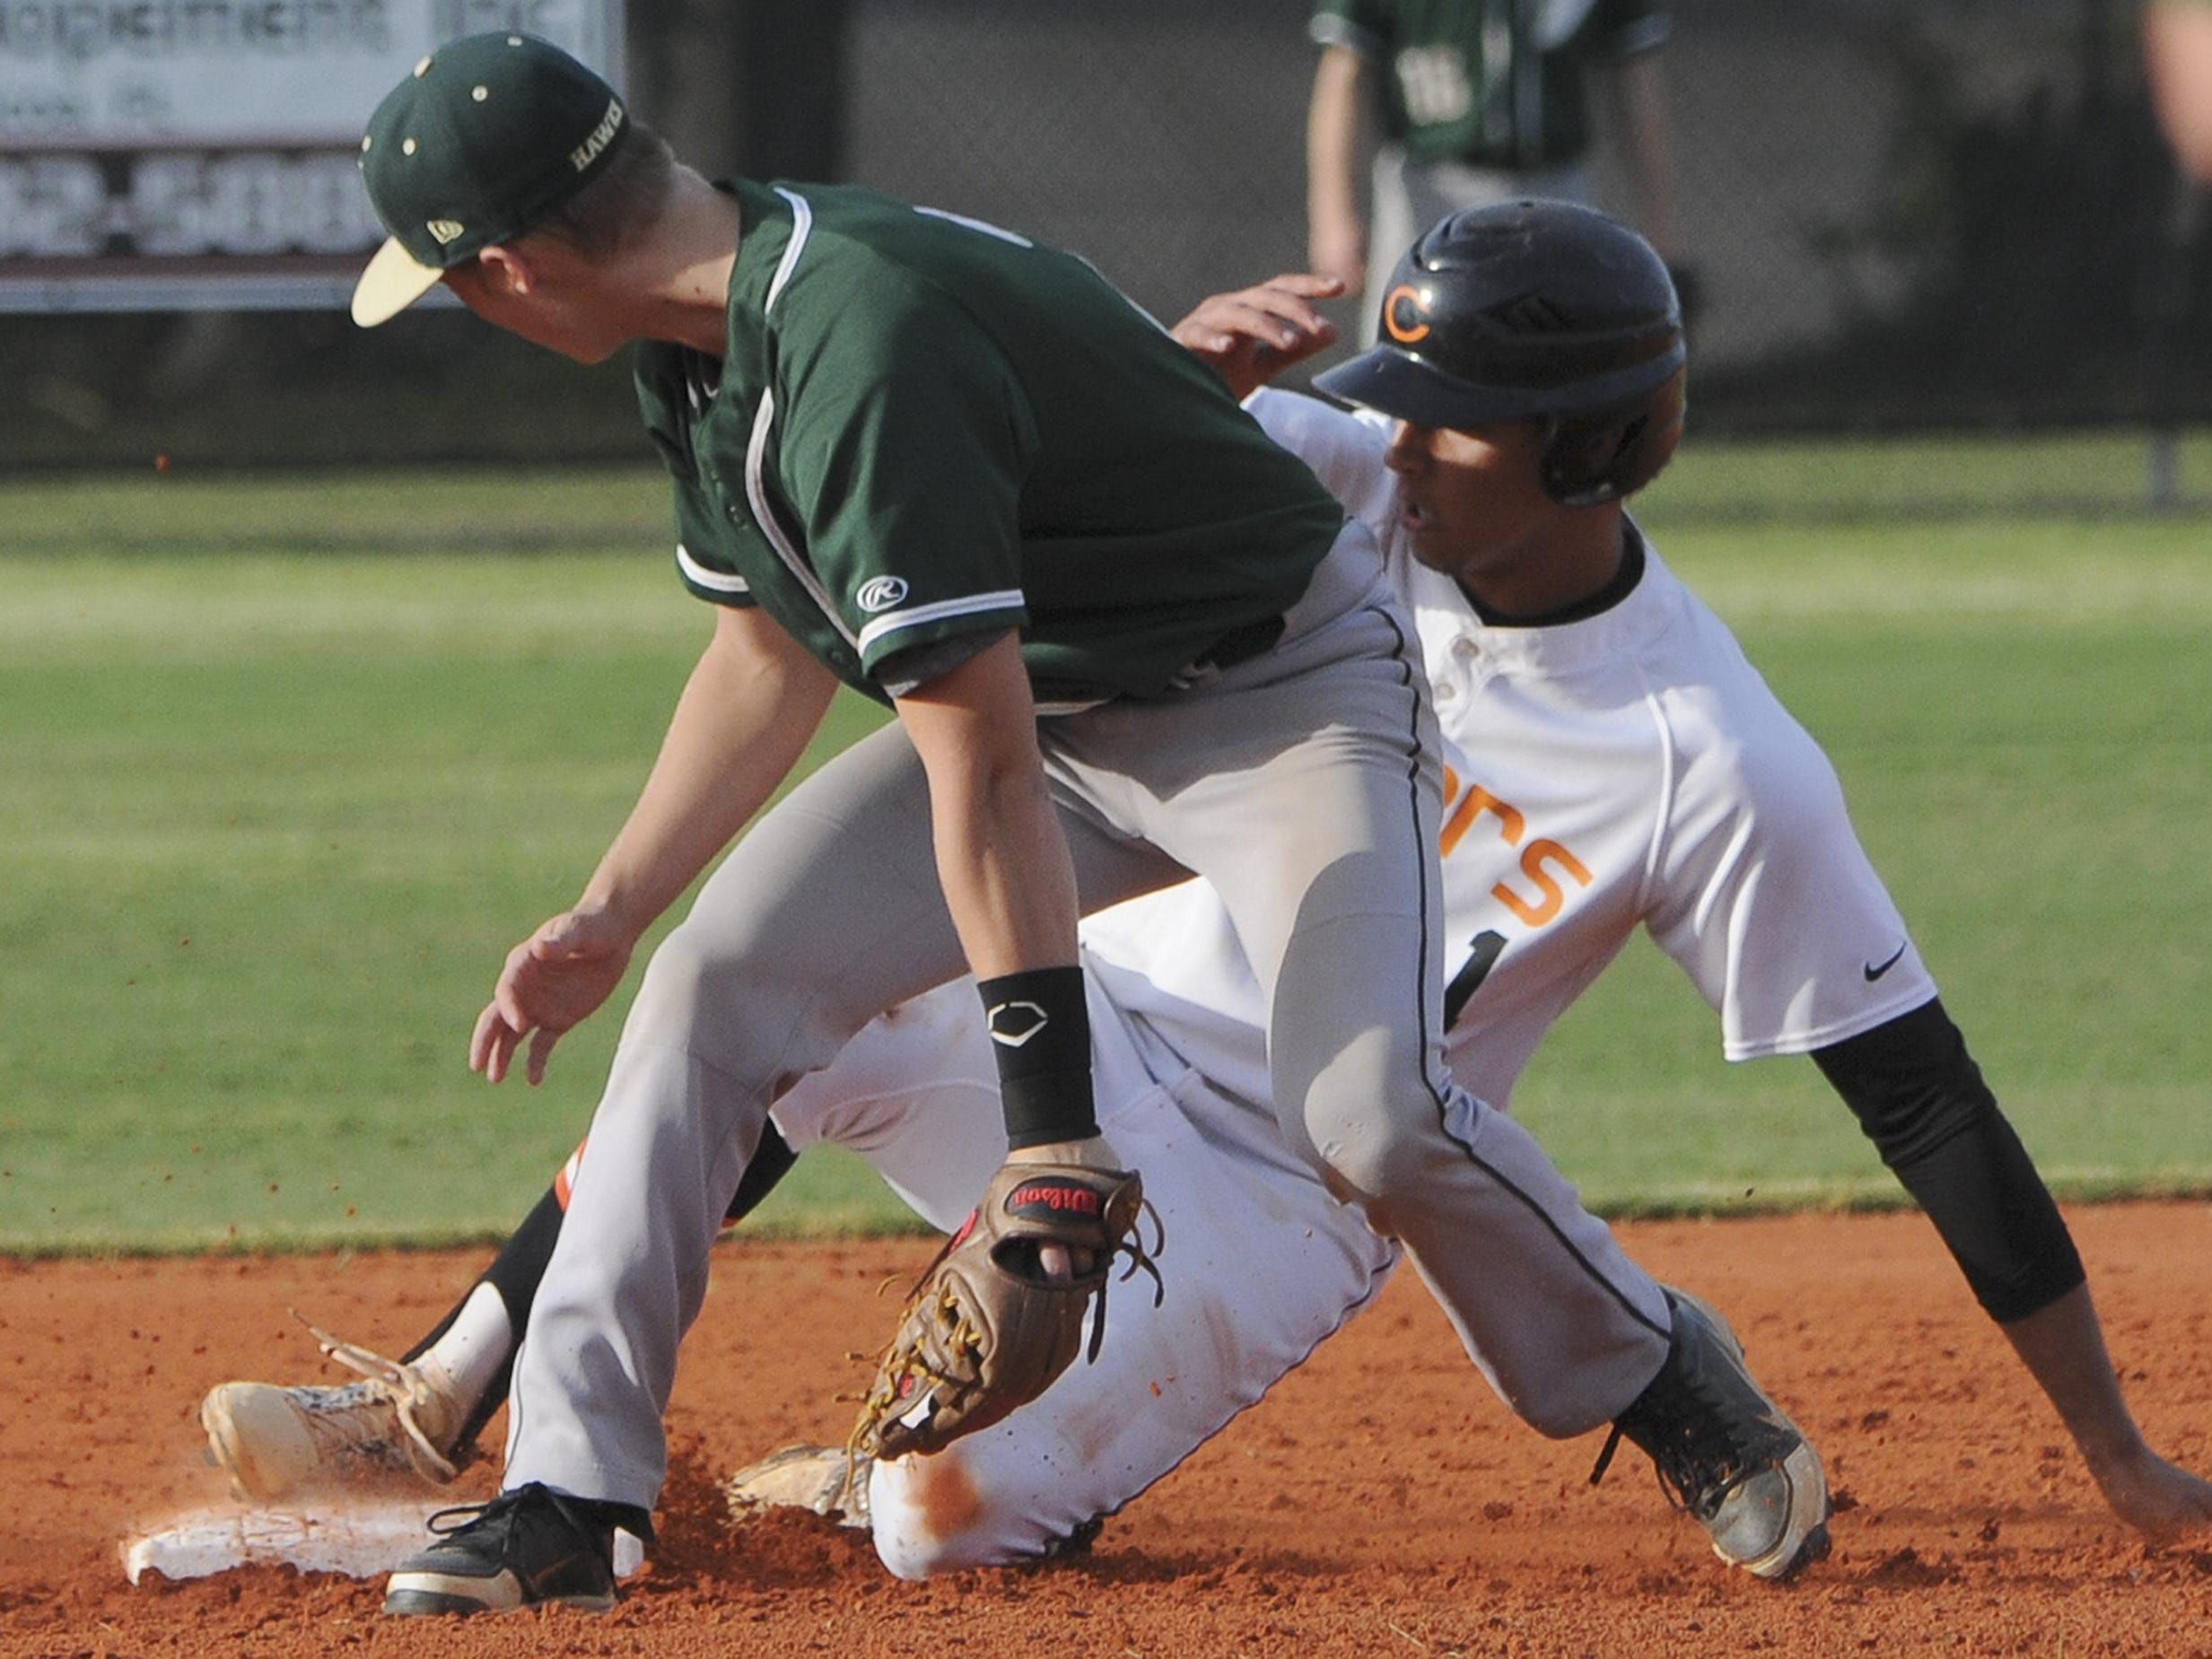 Cocoa's Zach Armour safely makes it to second before the tag by Brody Legate of Viera during Wednesday's game.